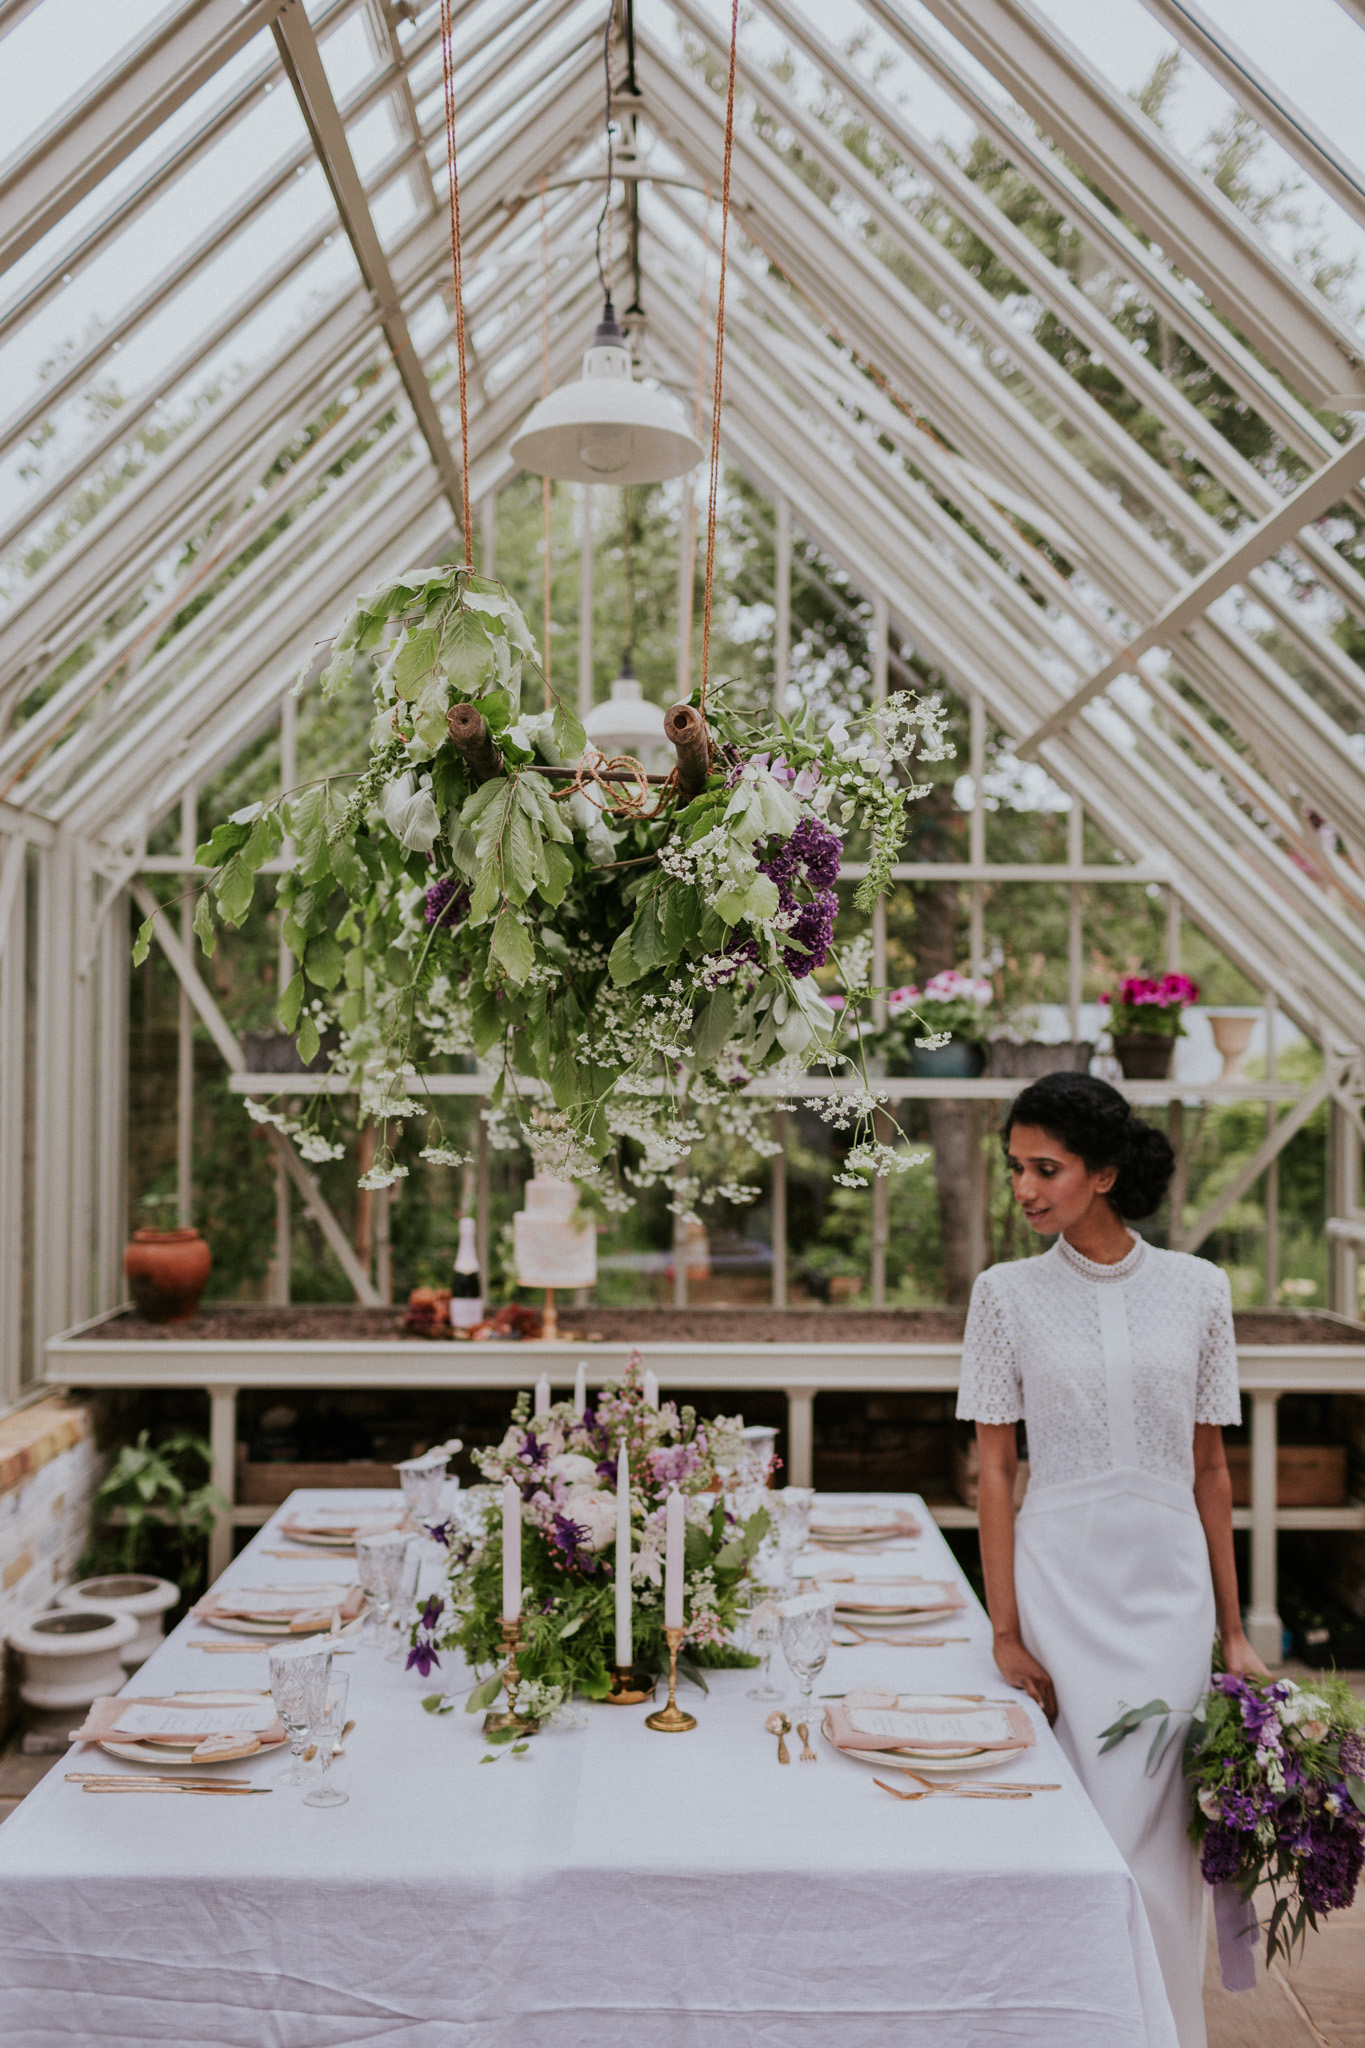 An endlessly romantic intimate setting. Perfect inspiration for a garden wedding.